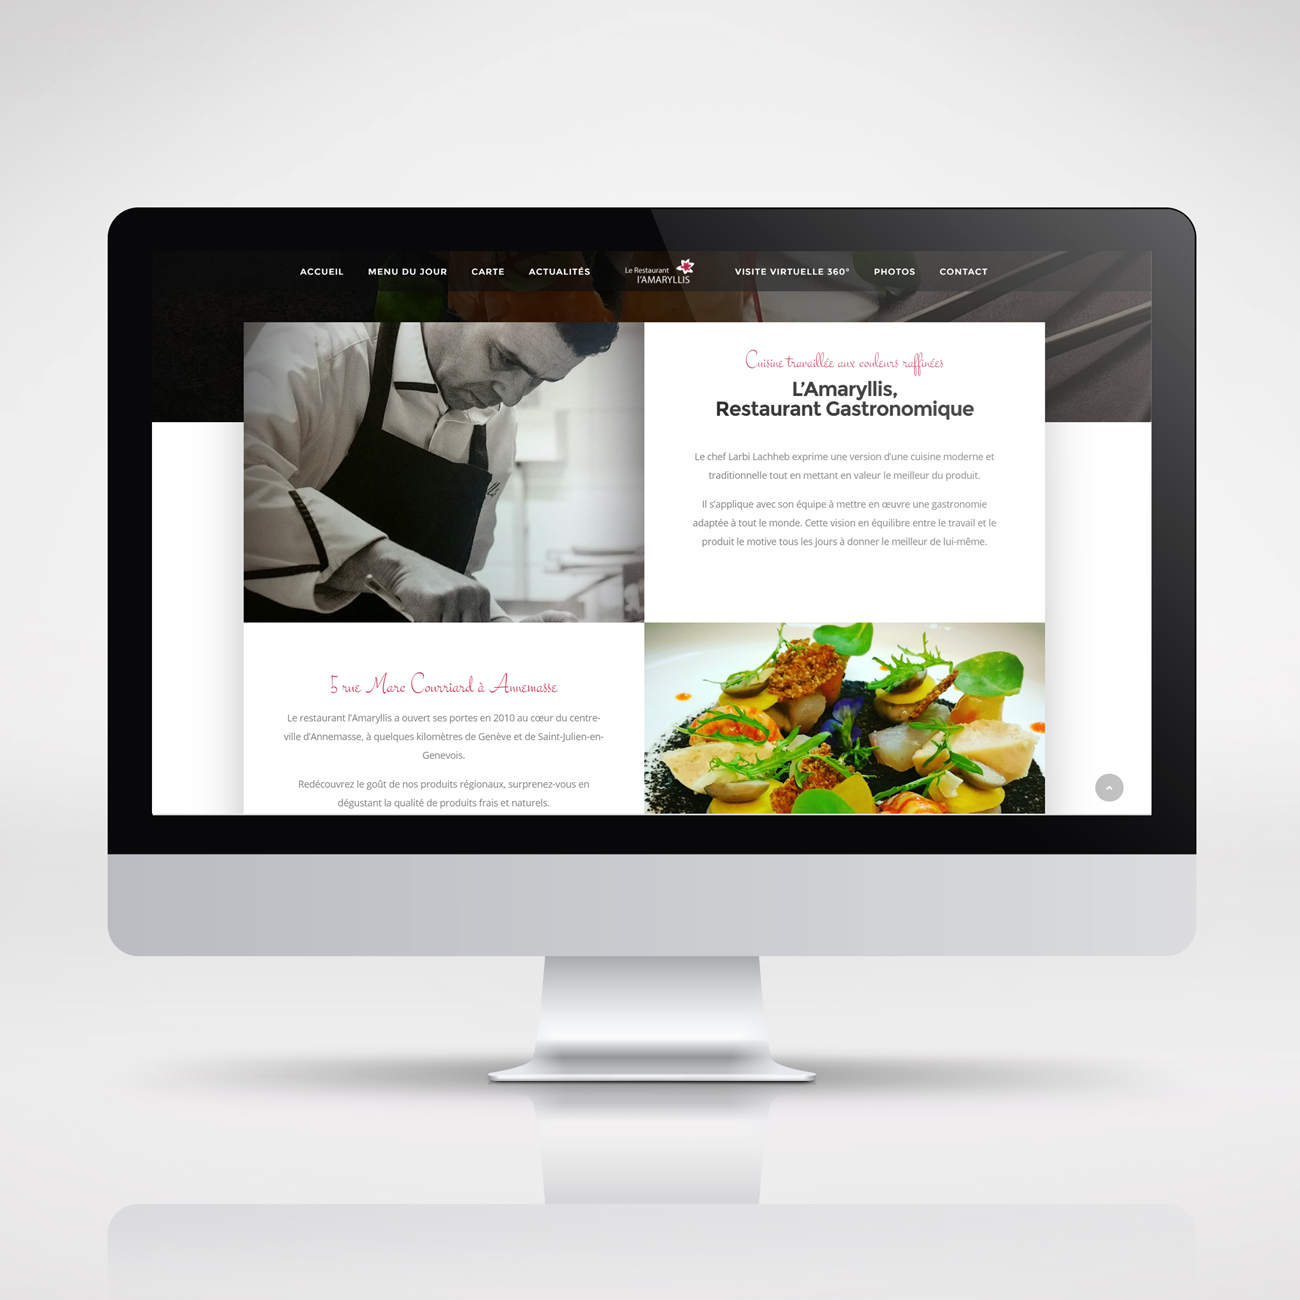 Restaurant L'Amaryllis – website